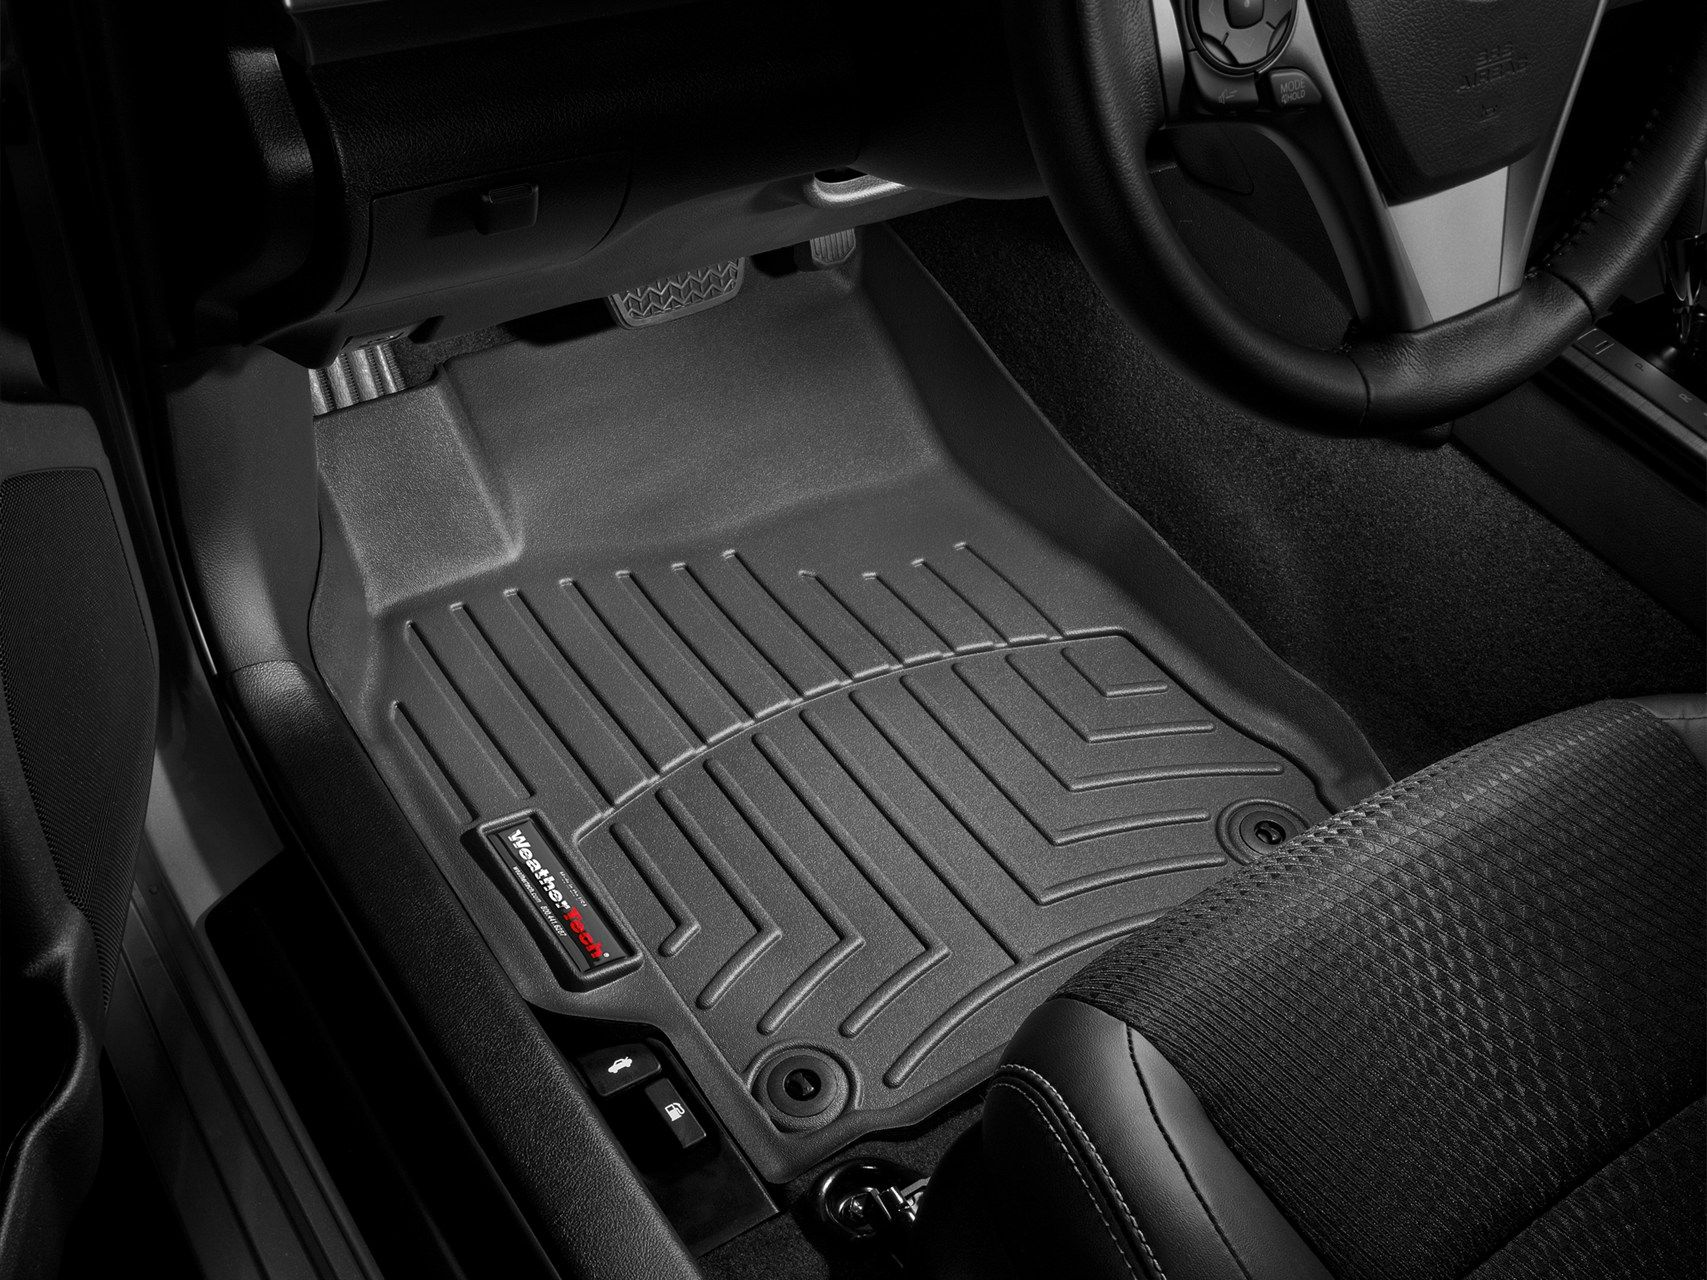 Weathertech floor mats acura tl - 1000 Images About Cars On Pinterest Toyota Car Floor Mats And Mud